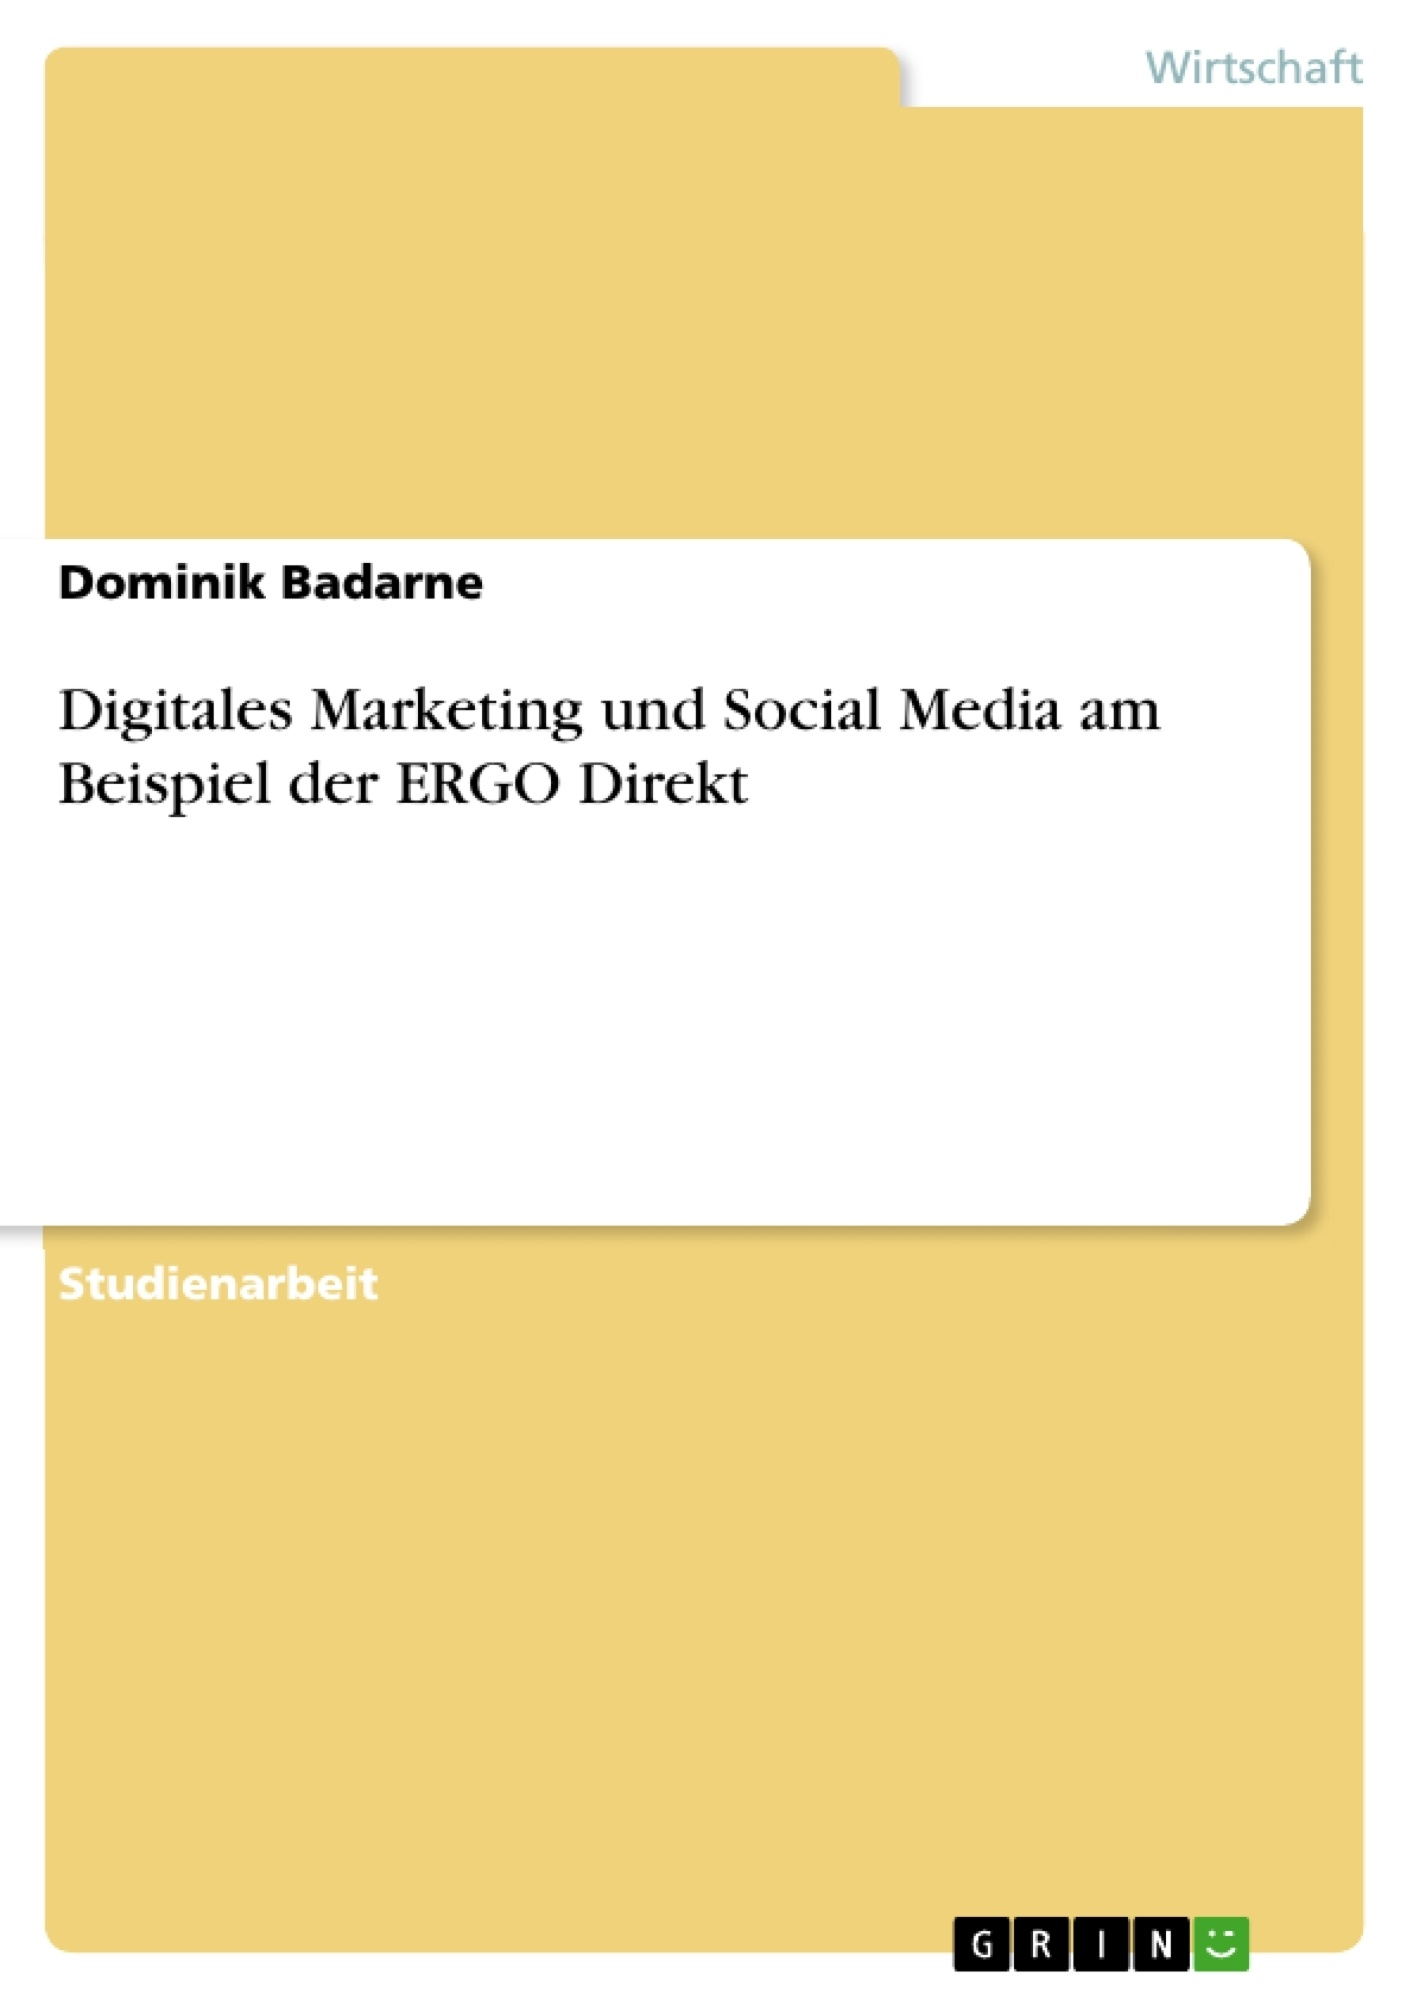 Titel: Digitales Marketing und Social Media am Beispiel der ERGO Direkt